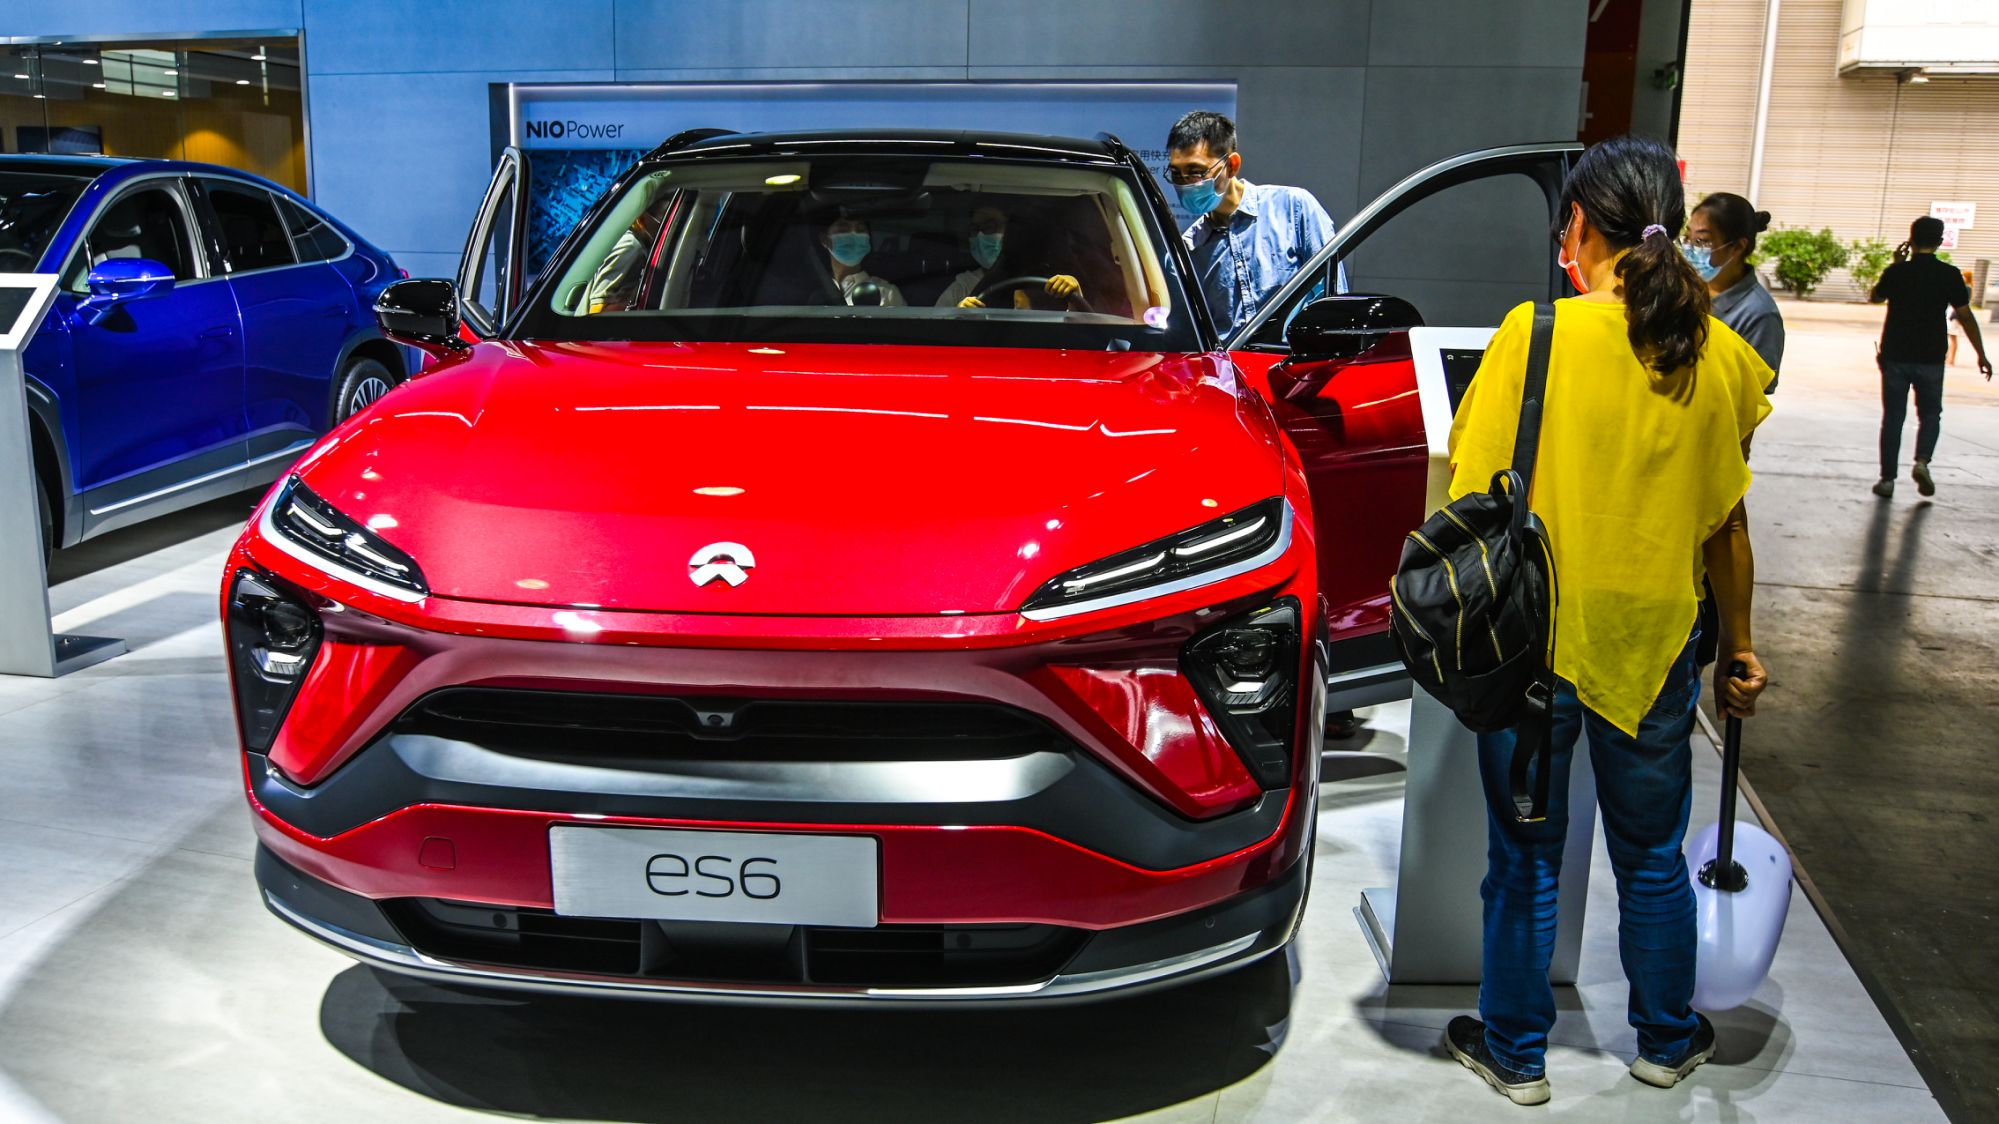 Access here alternative investment news about Nio Earnings Preview: Here's What To Expect From The Chinese Ev Maker